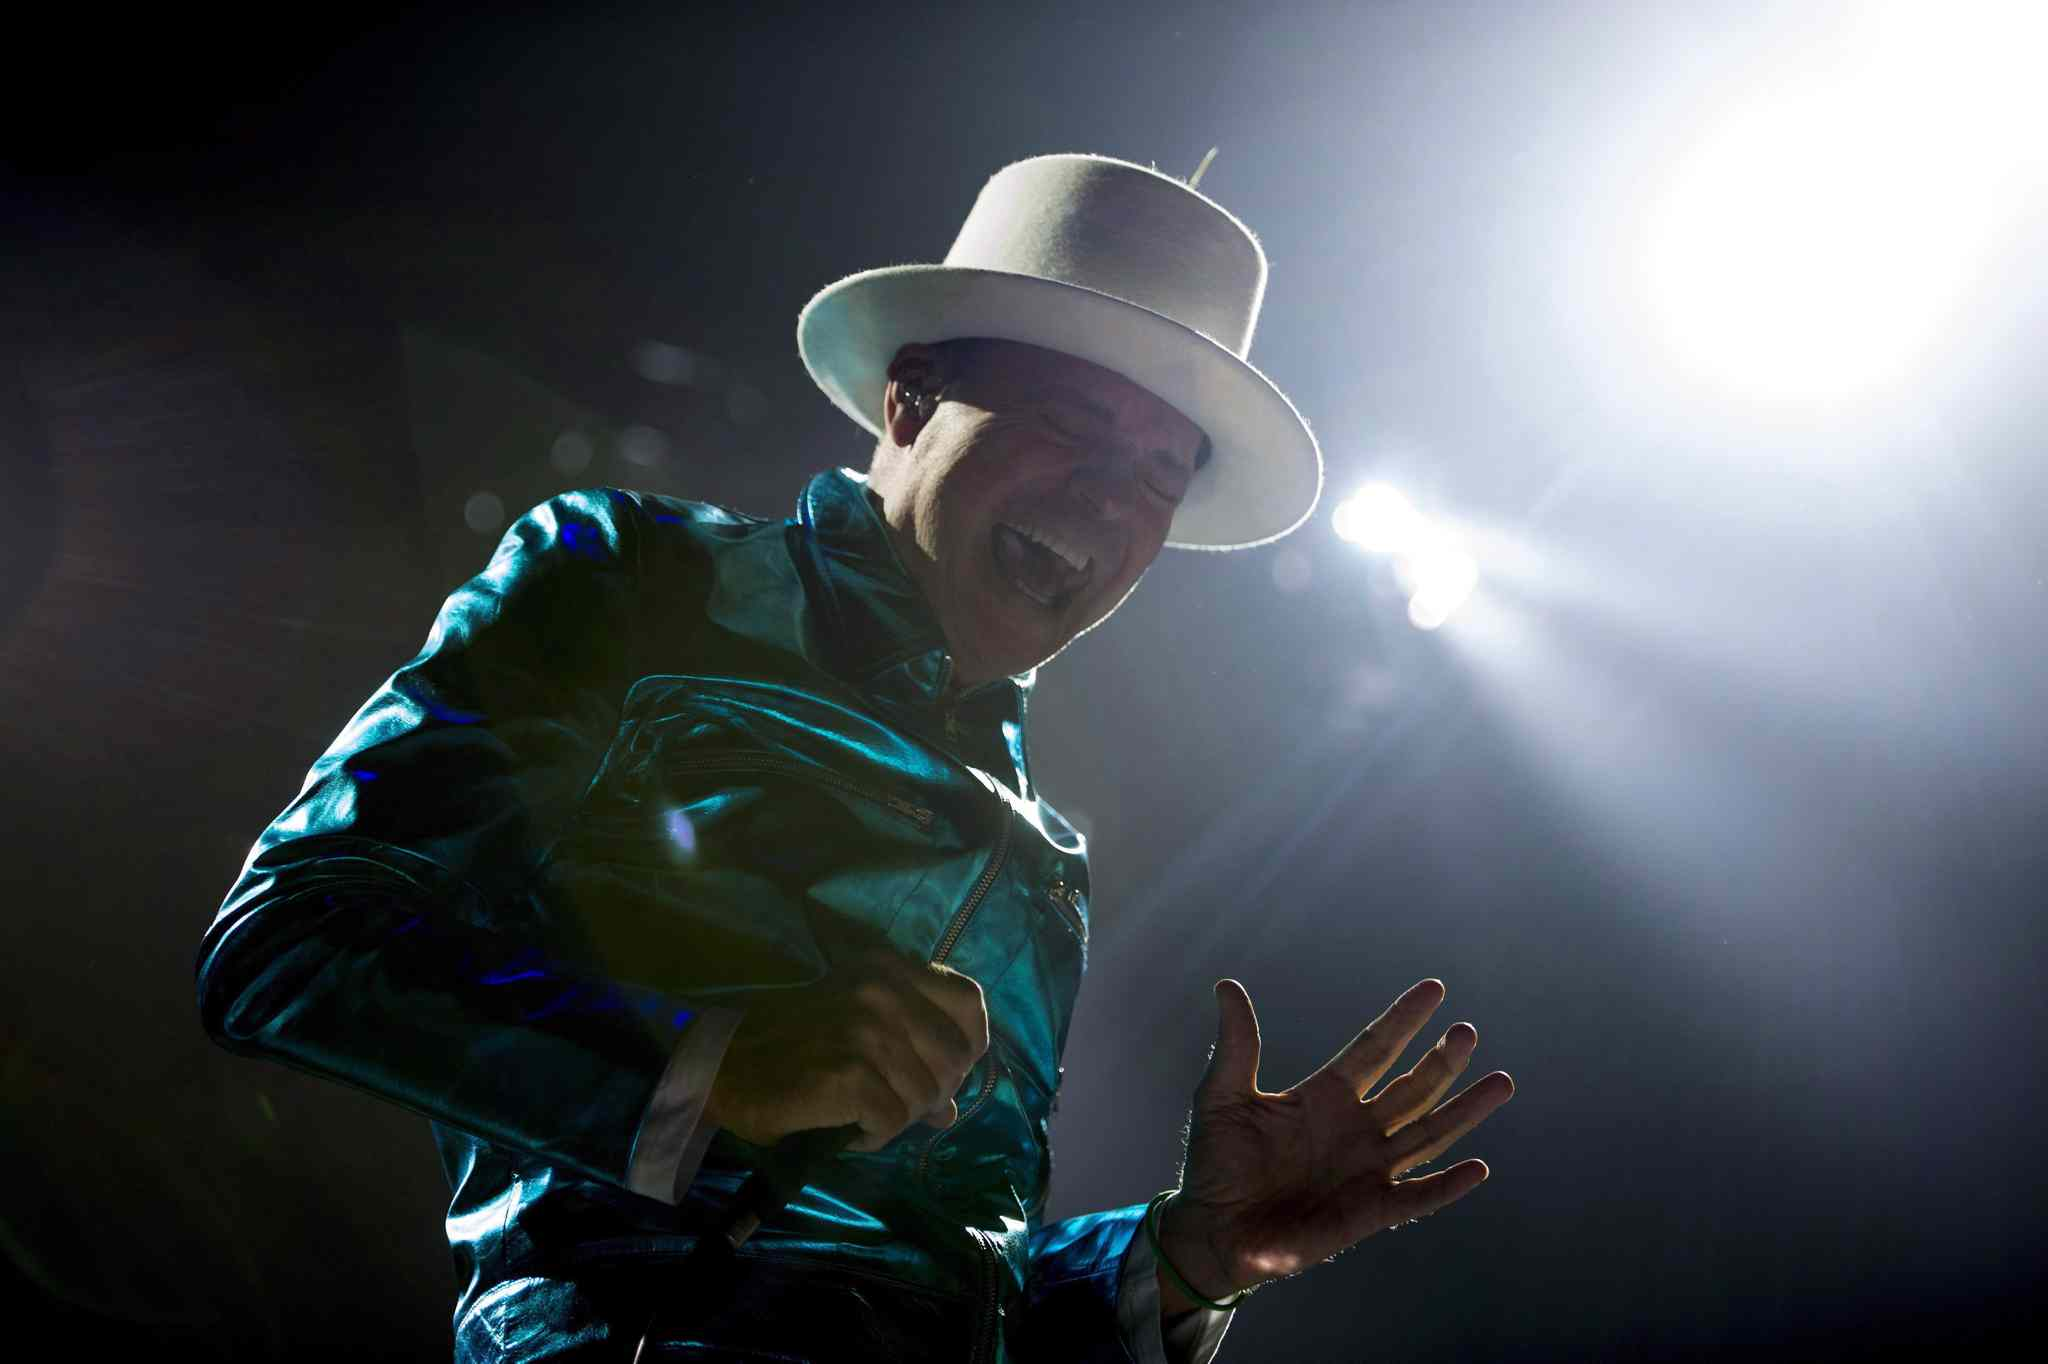 JONATHAN HAYWARD / THE CANADIAN PRESS FILES</P><p>Frontman of the Tragically Hip Gord Downie: No dress rehearsal. This is our life.